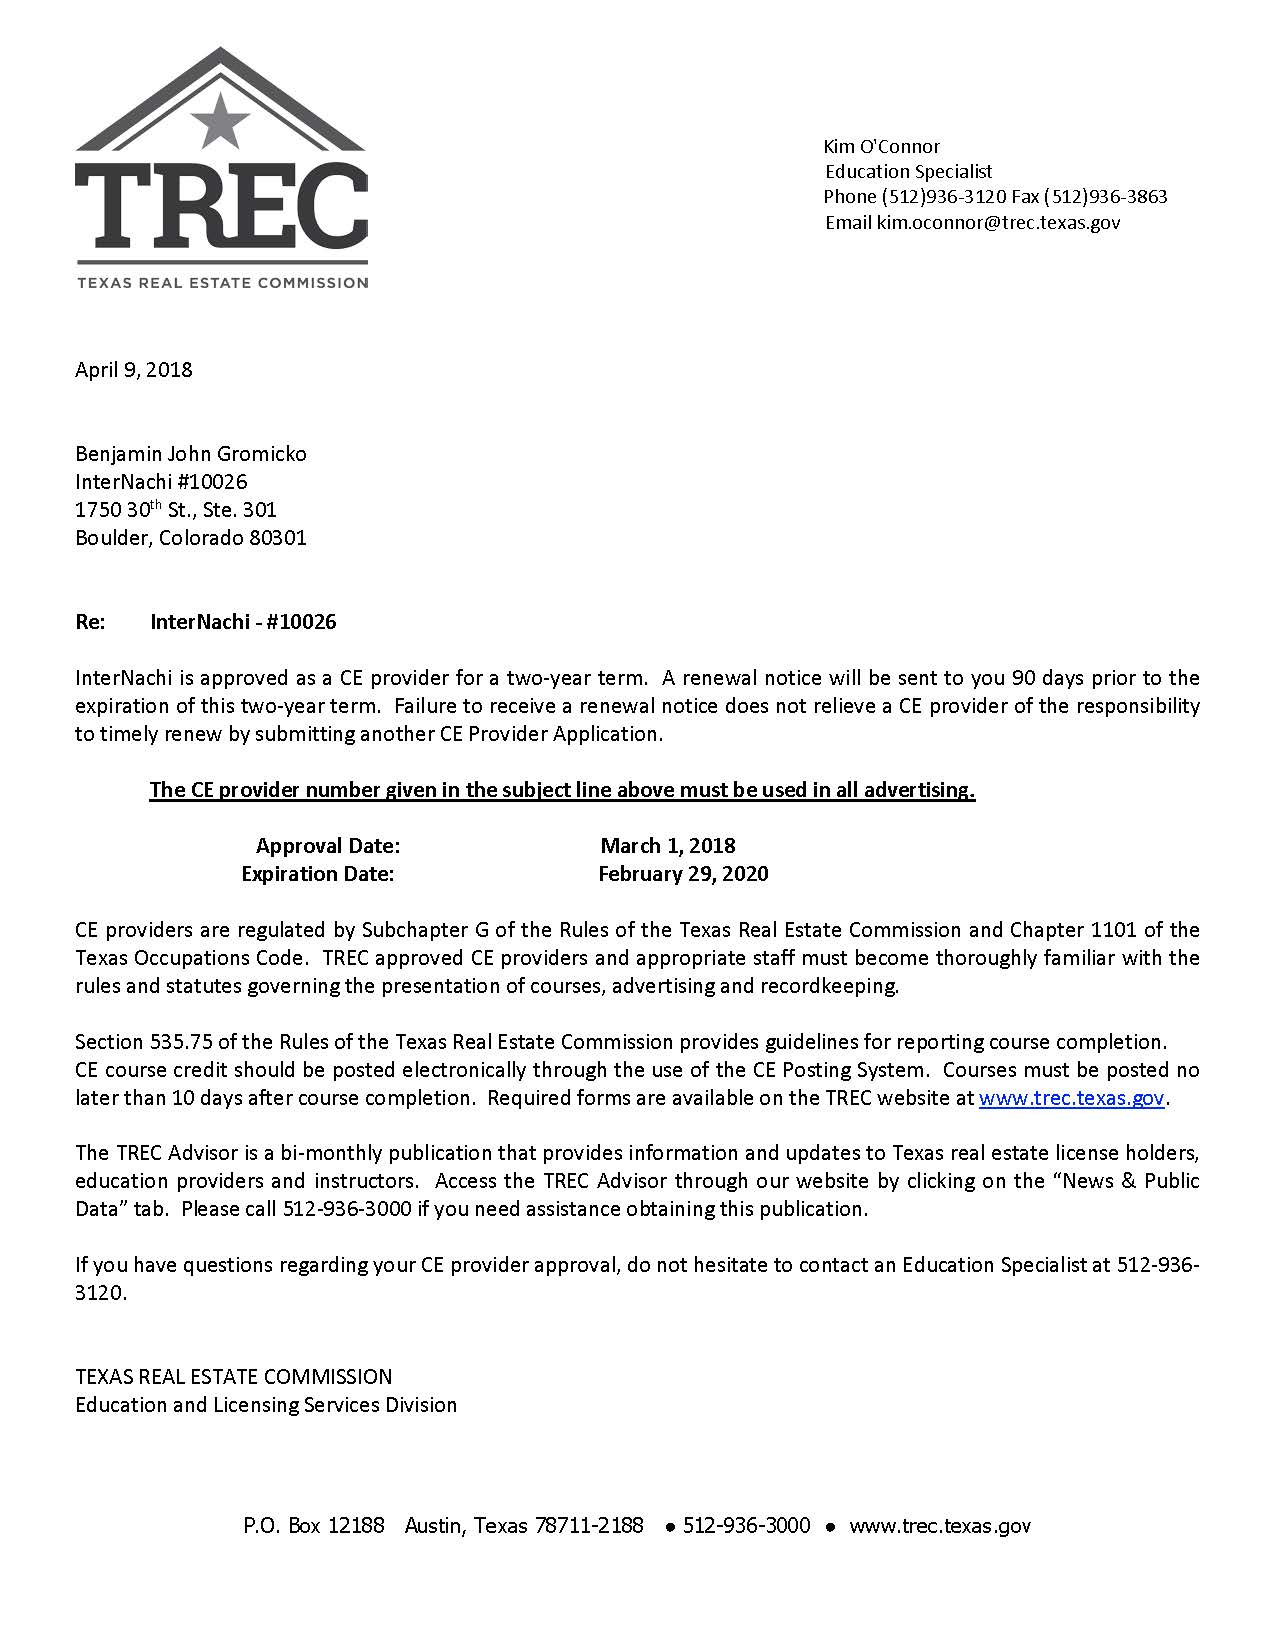 Texas Real Estate Commission (TREC) Approves InterNACHI as